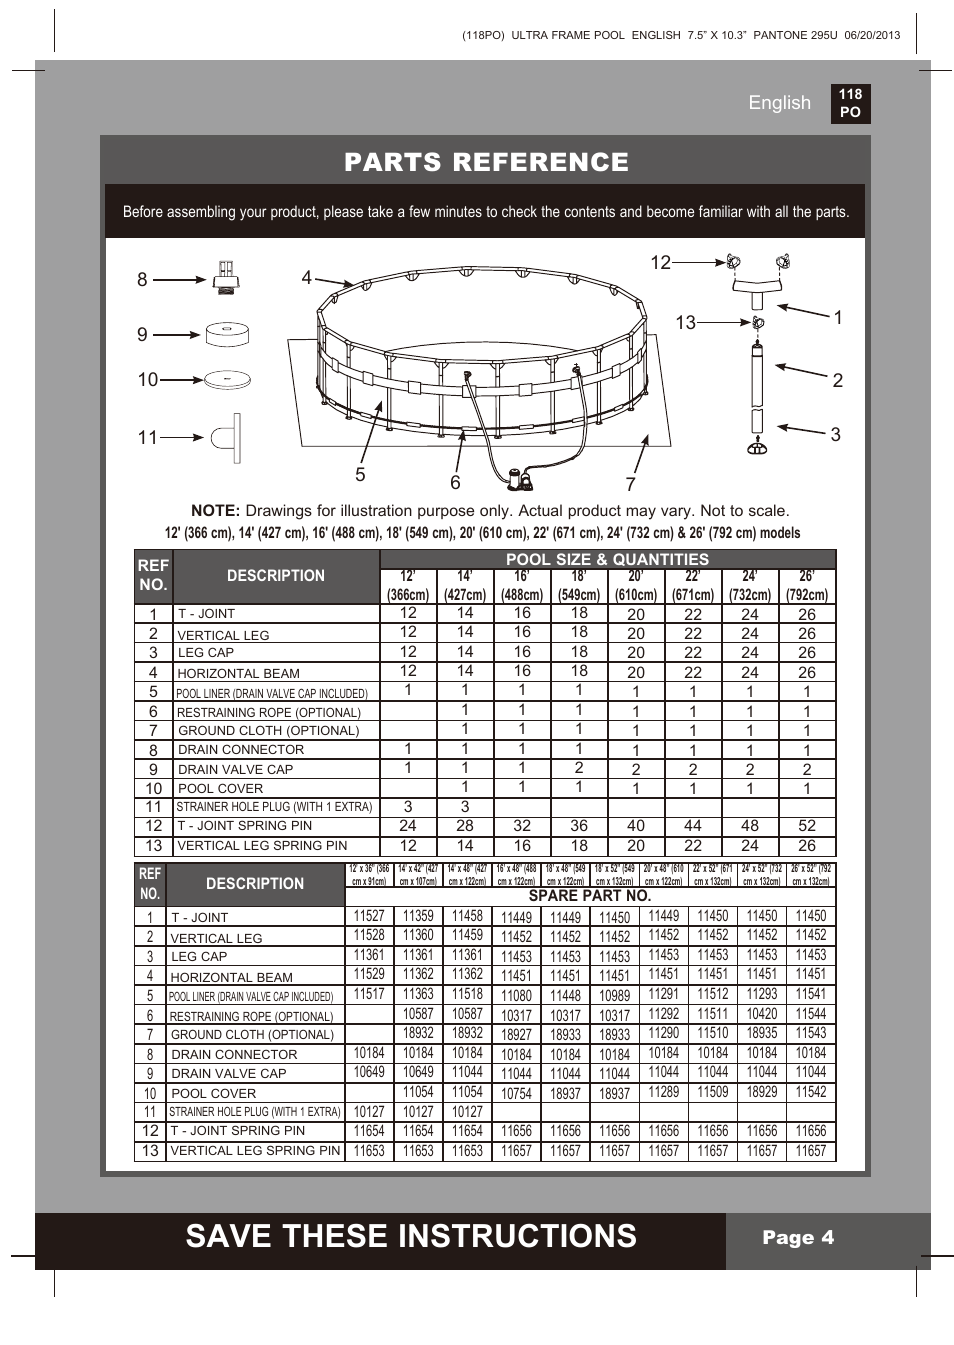 Save These Instructions, Parts Reference, English Page 4 | Intex 18 FT X 52  IN ULTRA FRAME POOL 2014 User Manual | Page 4 / 12